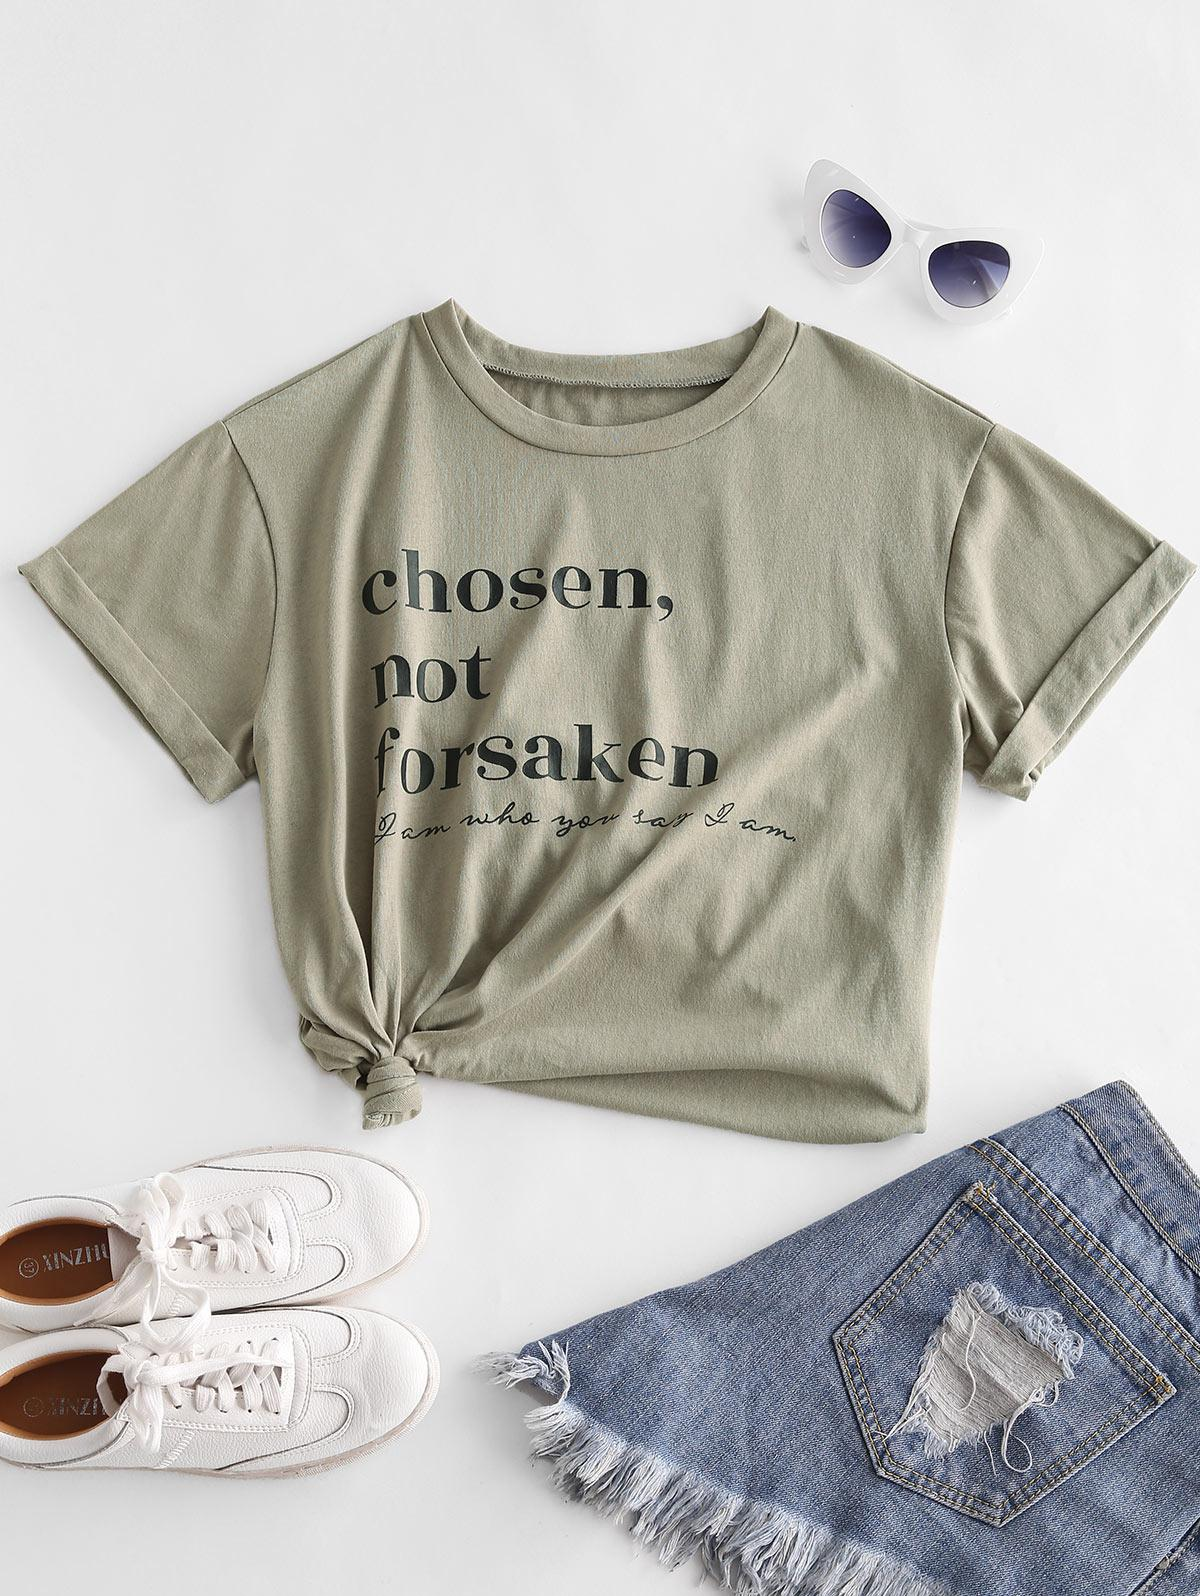 ZAFUL Chosen Not Forsaken Graphic Basic T-shirt